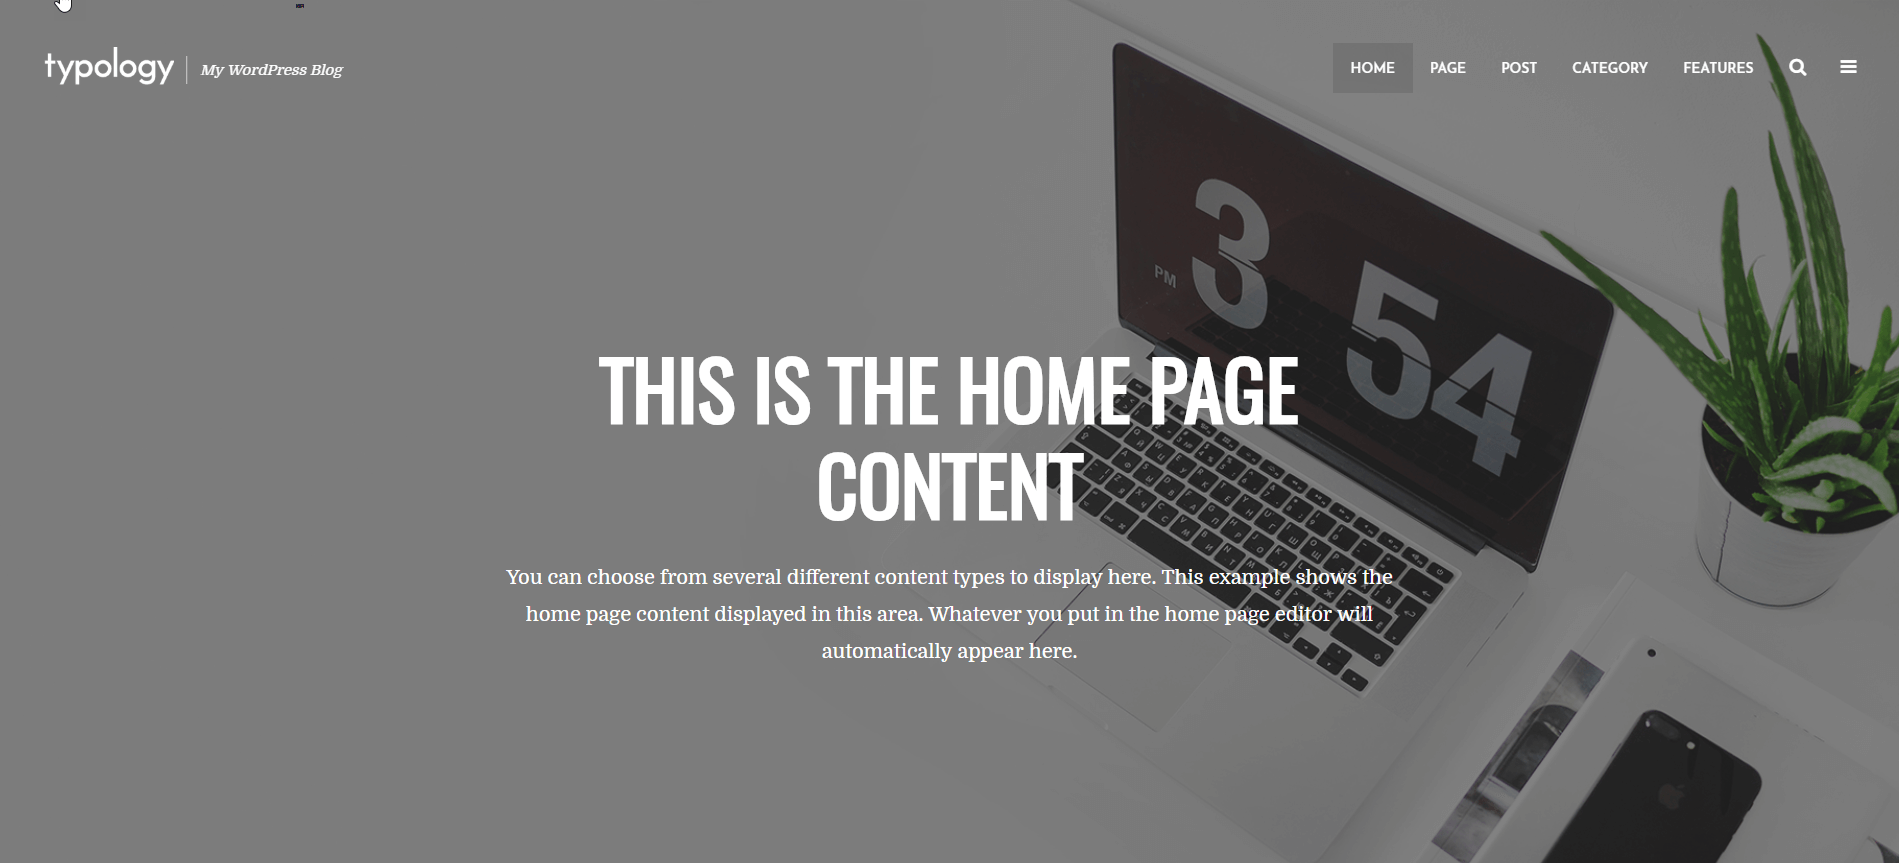 Installing Typology WordPress Theme 25